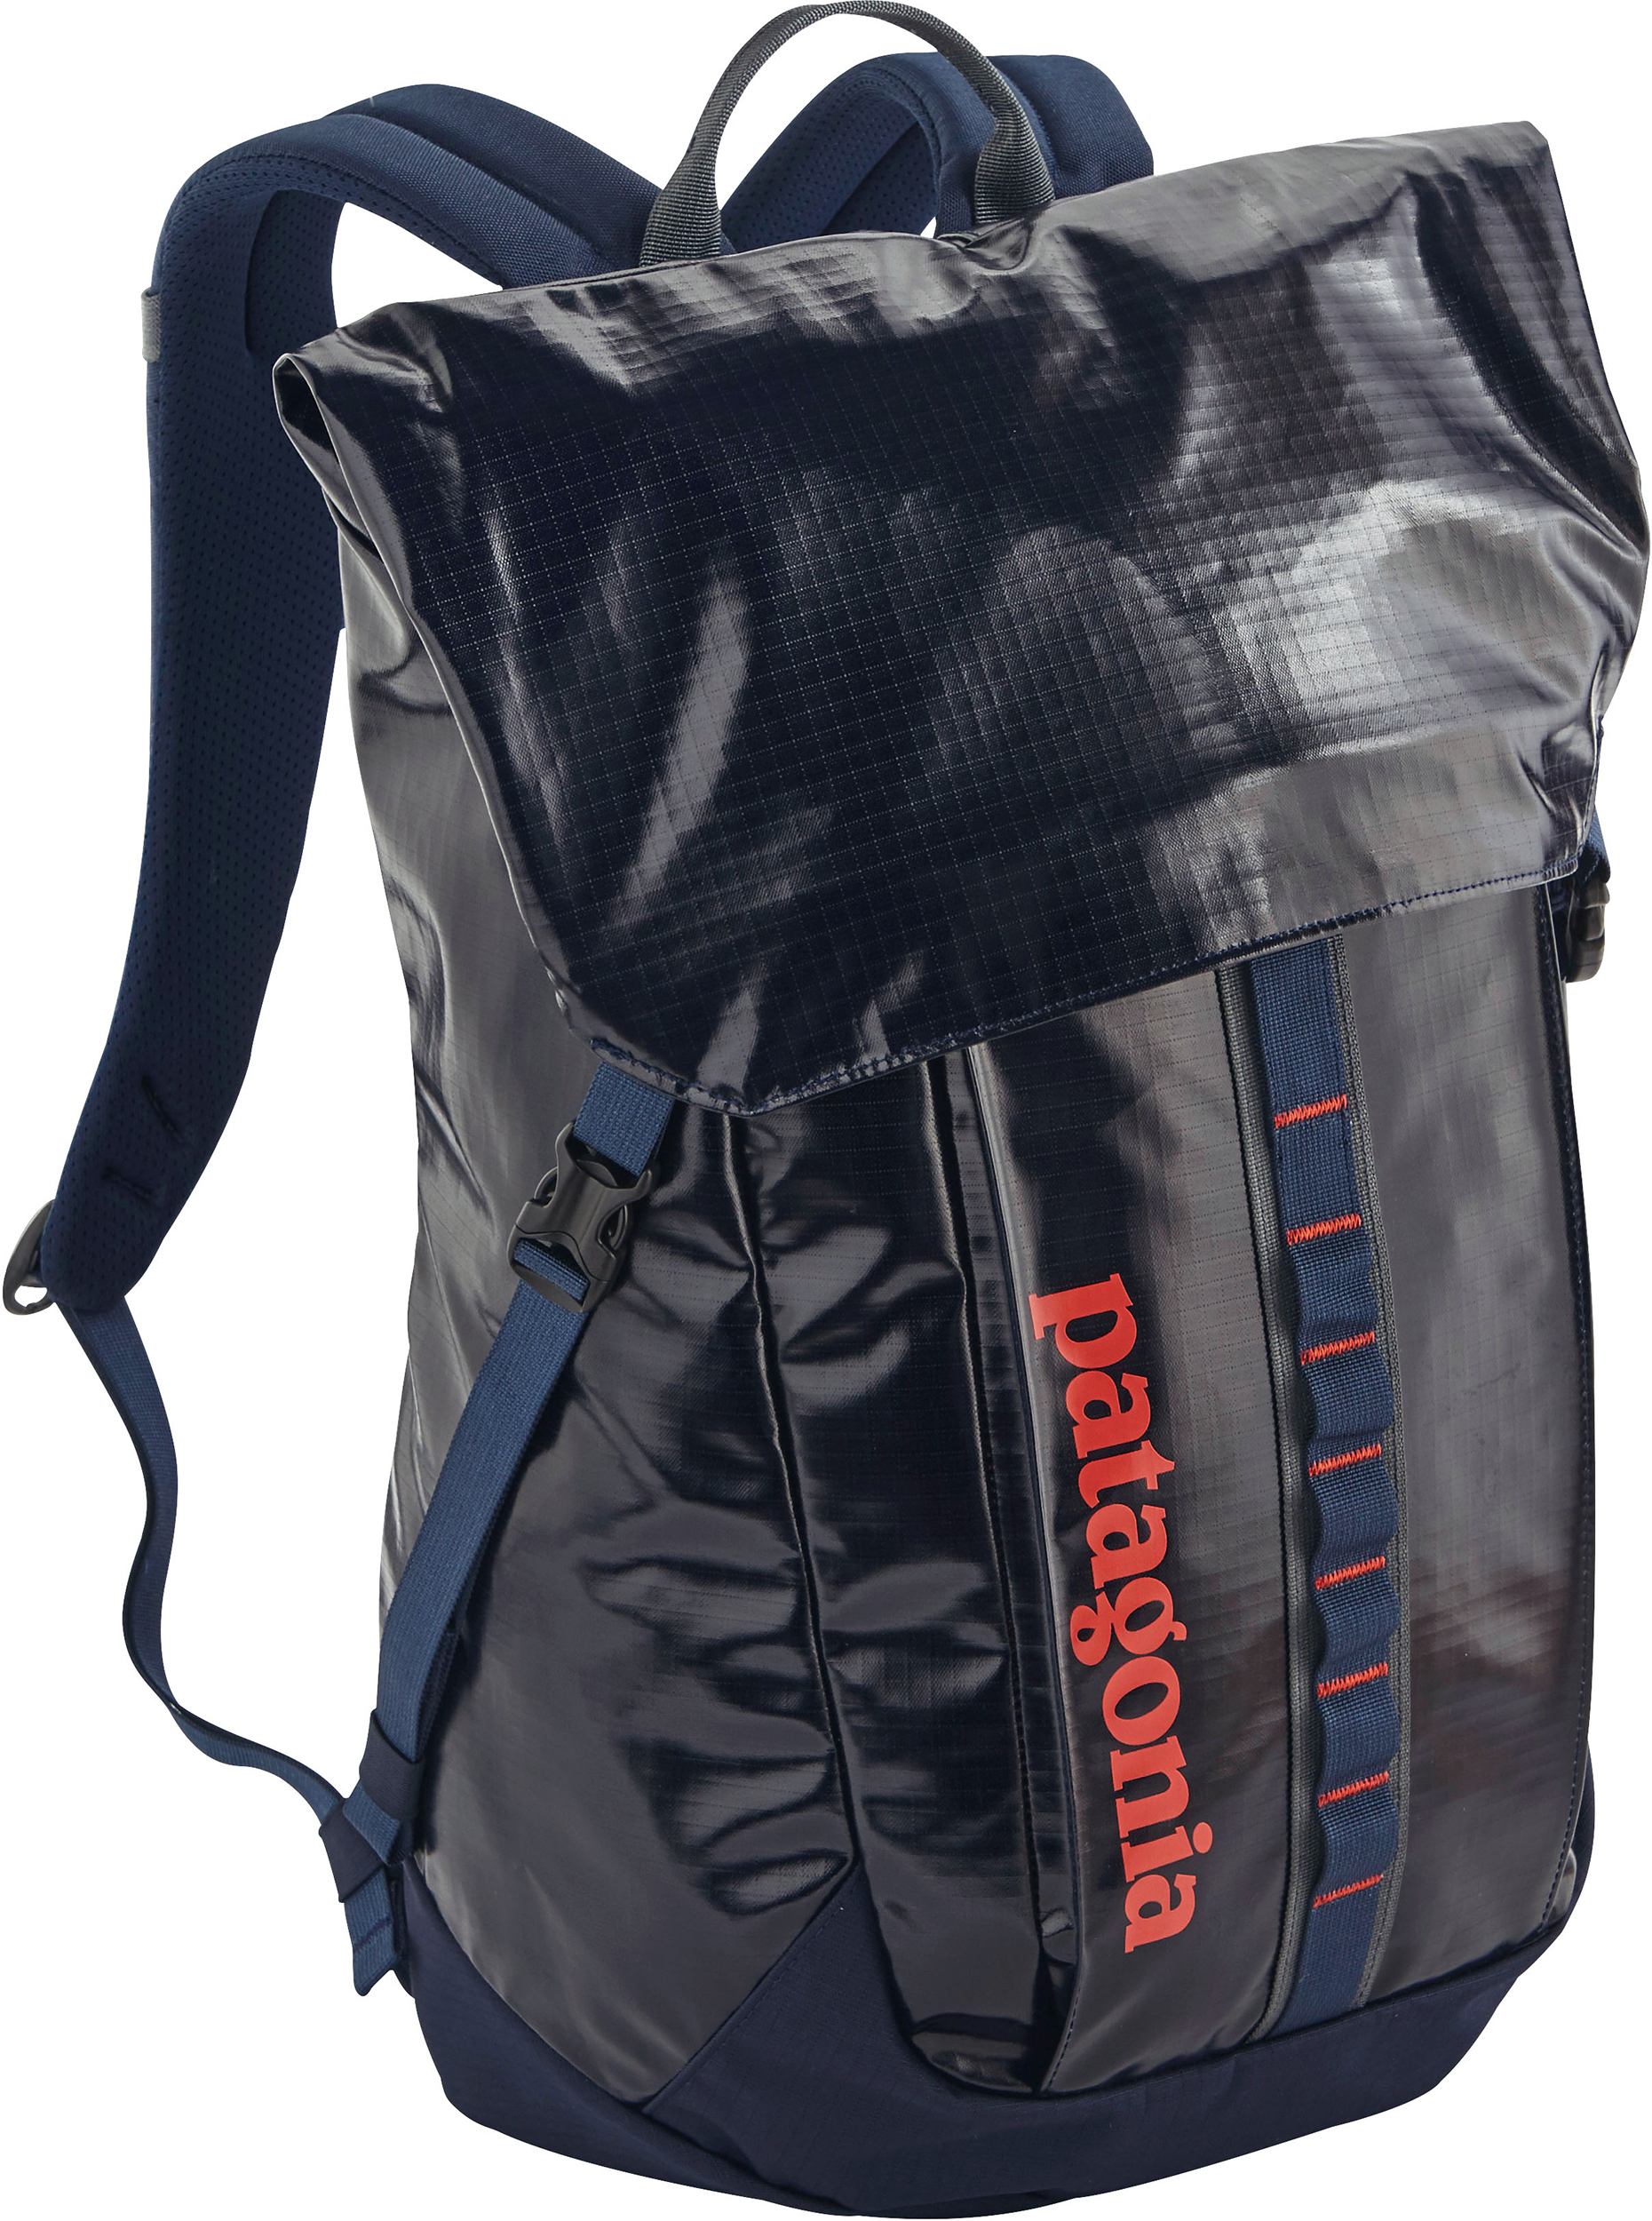 d303f9517a53 Patagonia Black Hole Backpack Waterproof- Fenix Toulouse Handball